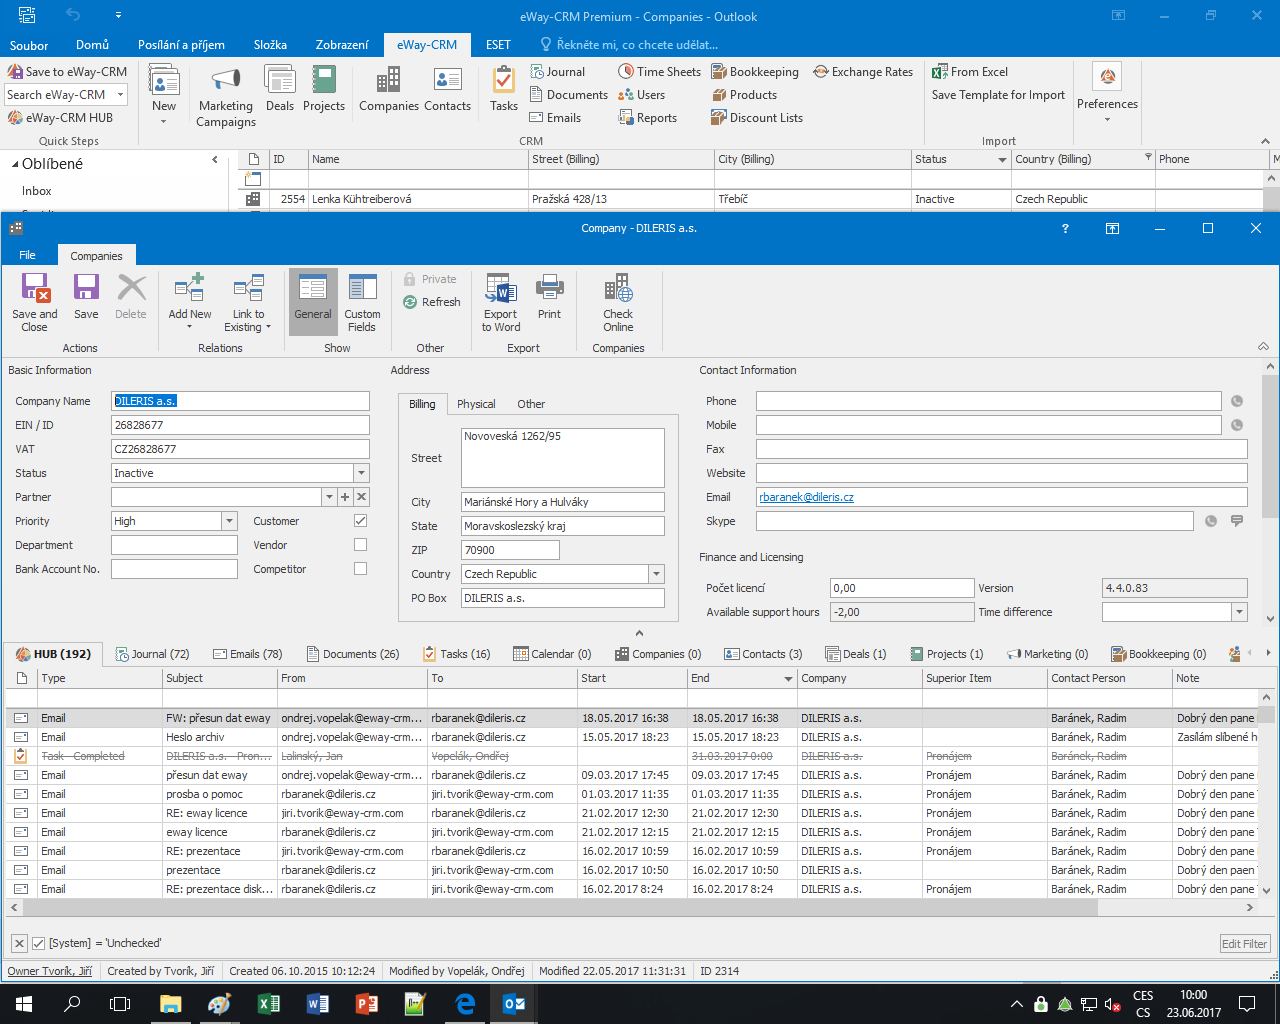 Company management interface in eWay-CRM